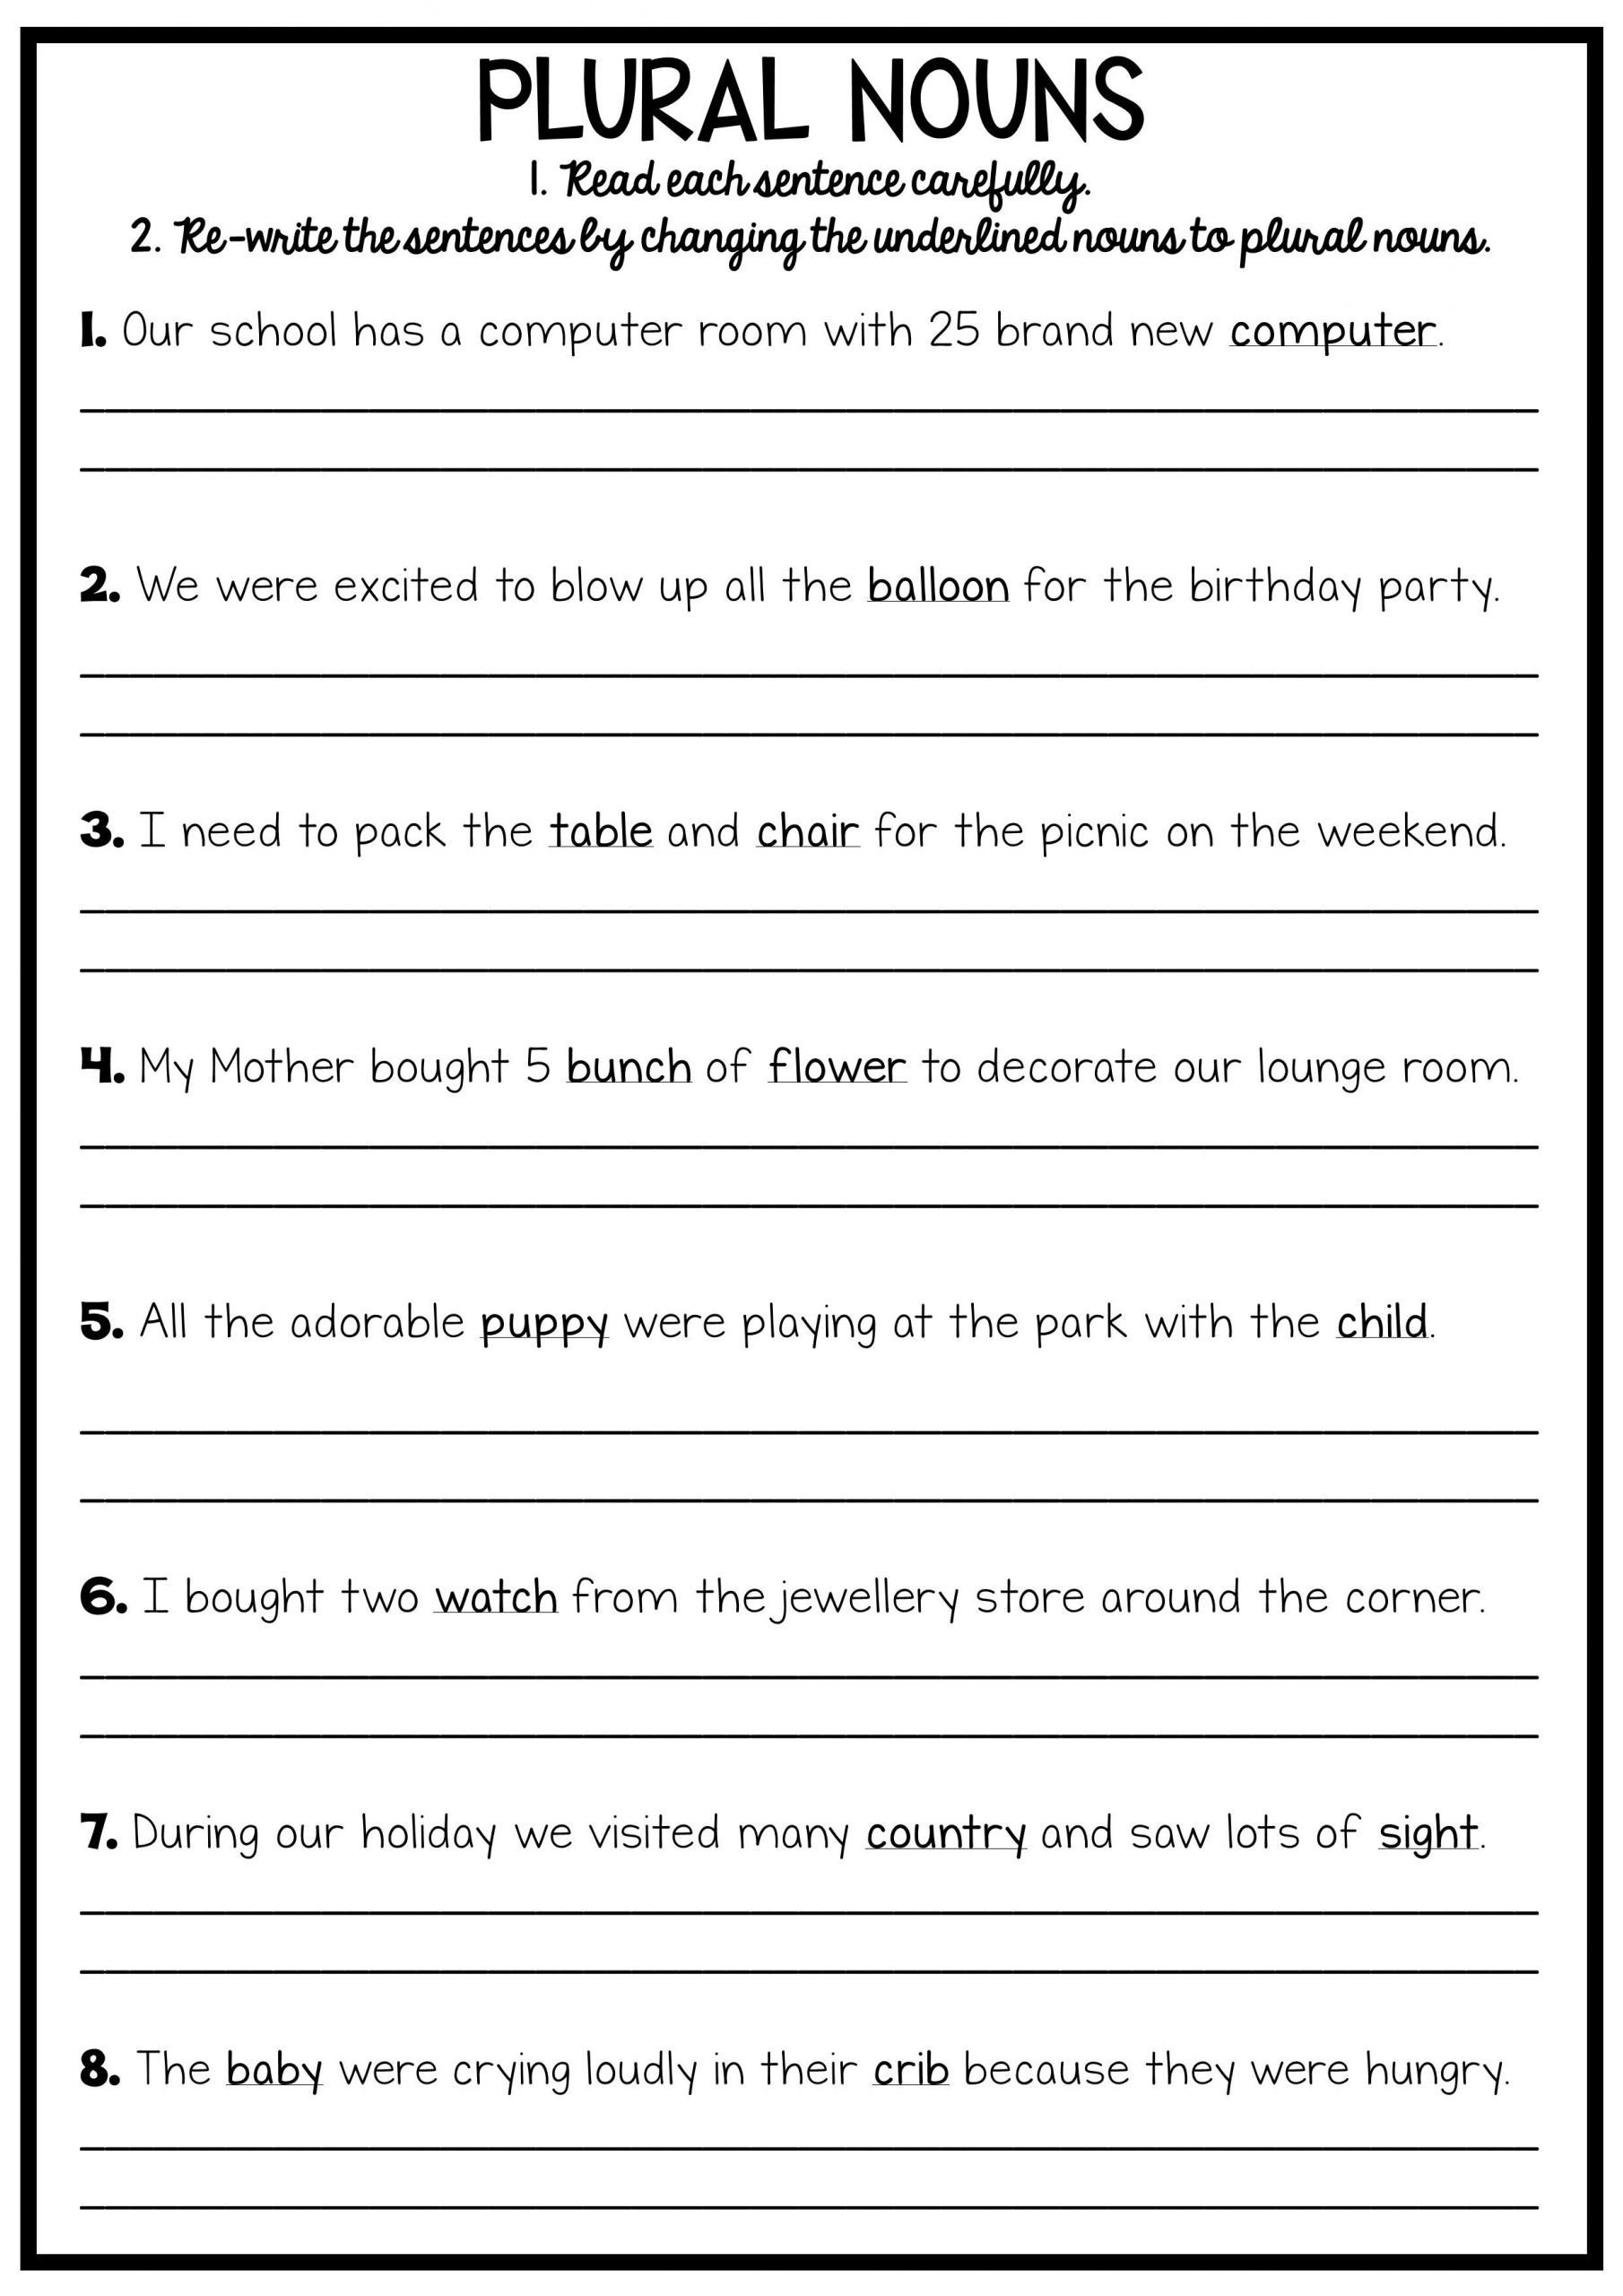 5th Grade Worksheets Printable Reading Grammar Worksheets 8th Grade English Printable Reading